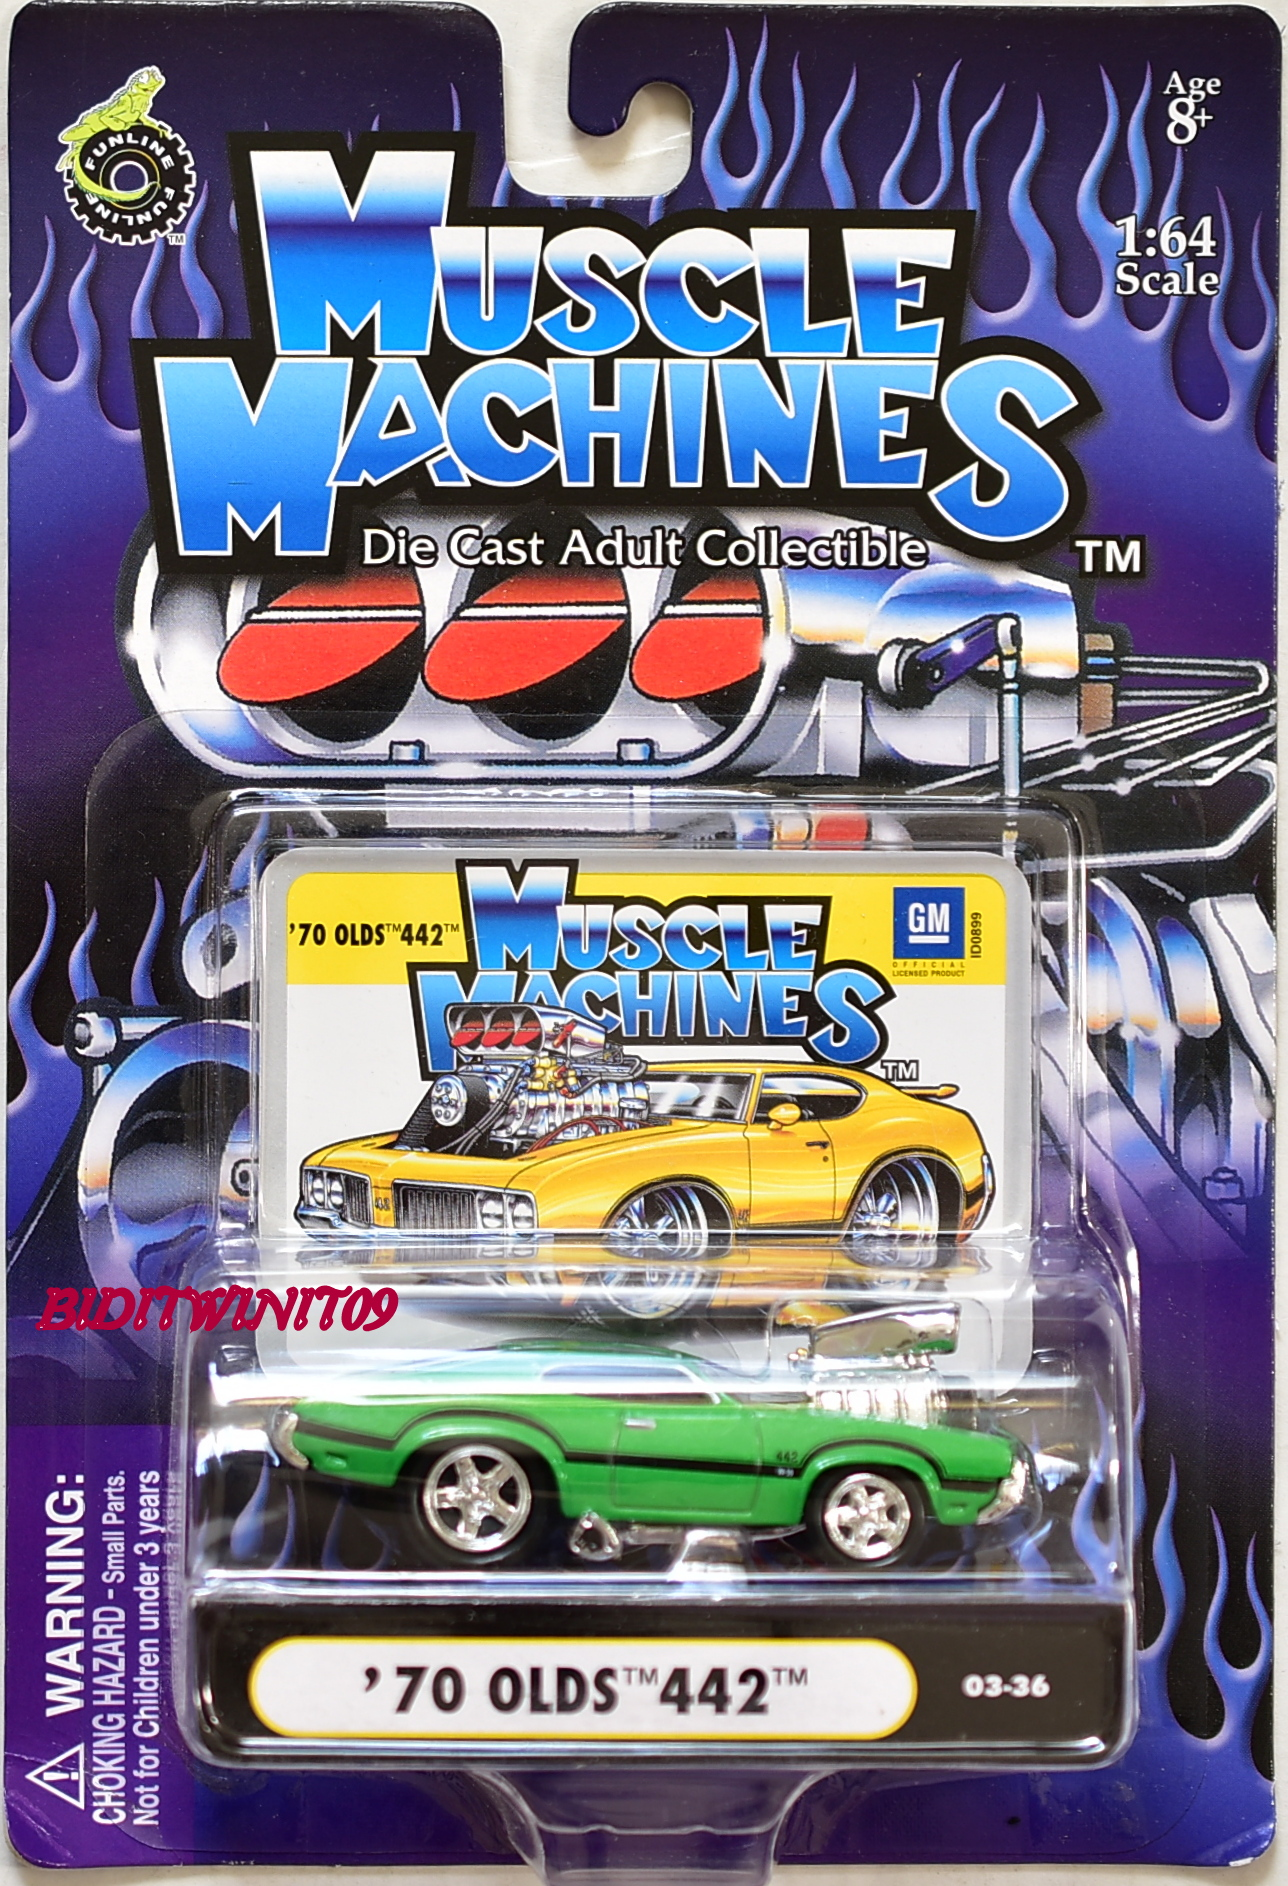 MUSCLE MACHINES '70 OLDS 442 03-36 GREEN SCALE 1:64 E+